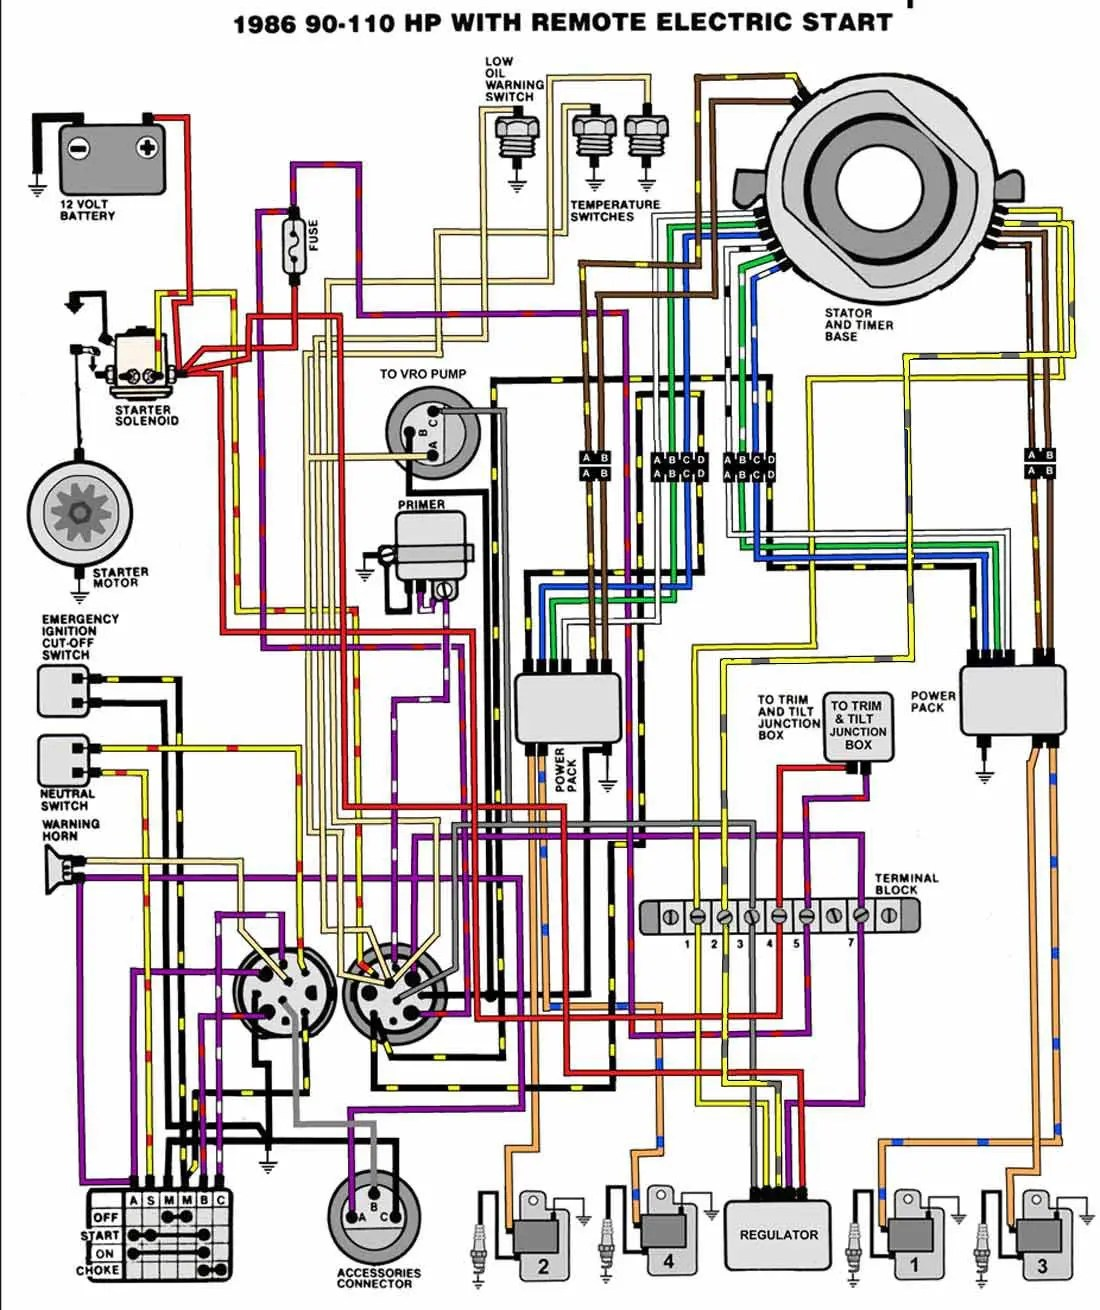 hight resolution of johnson outboard wiring diagram wiring diagram todaysjohnson outboard motor wiring diagram wiring library mercruiser wiring diagram